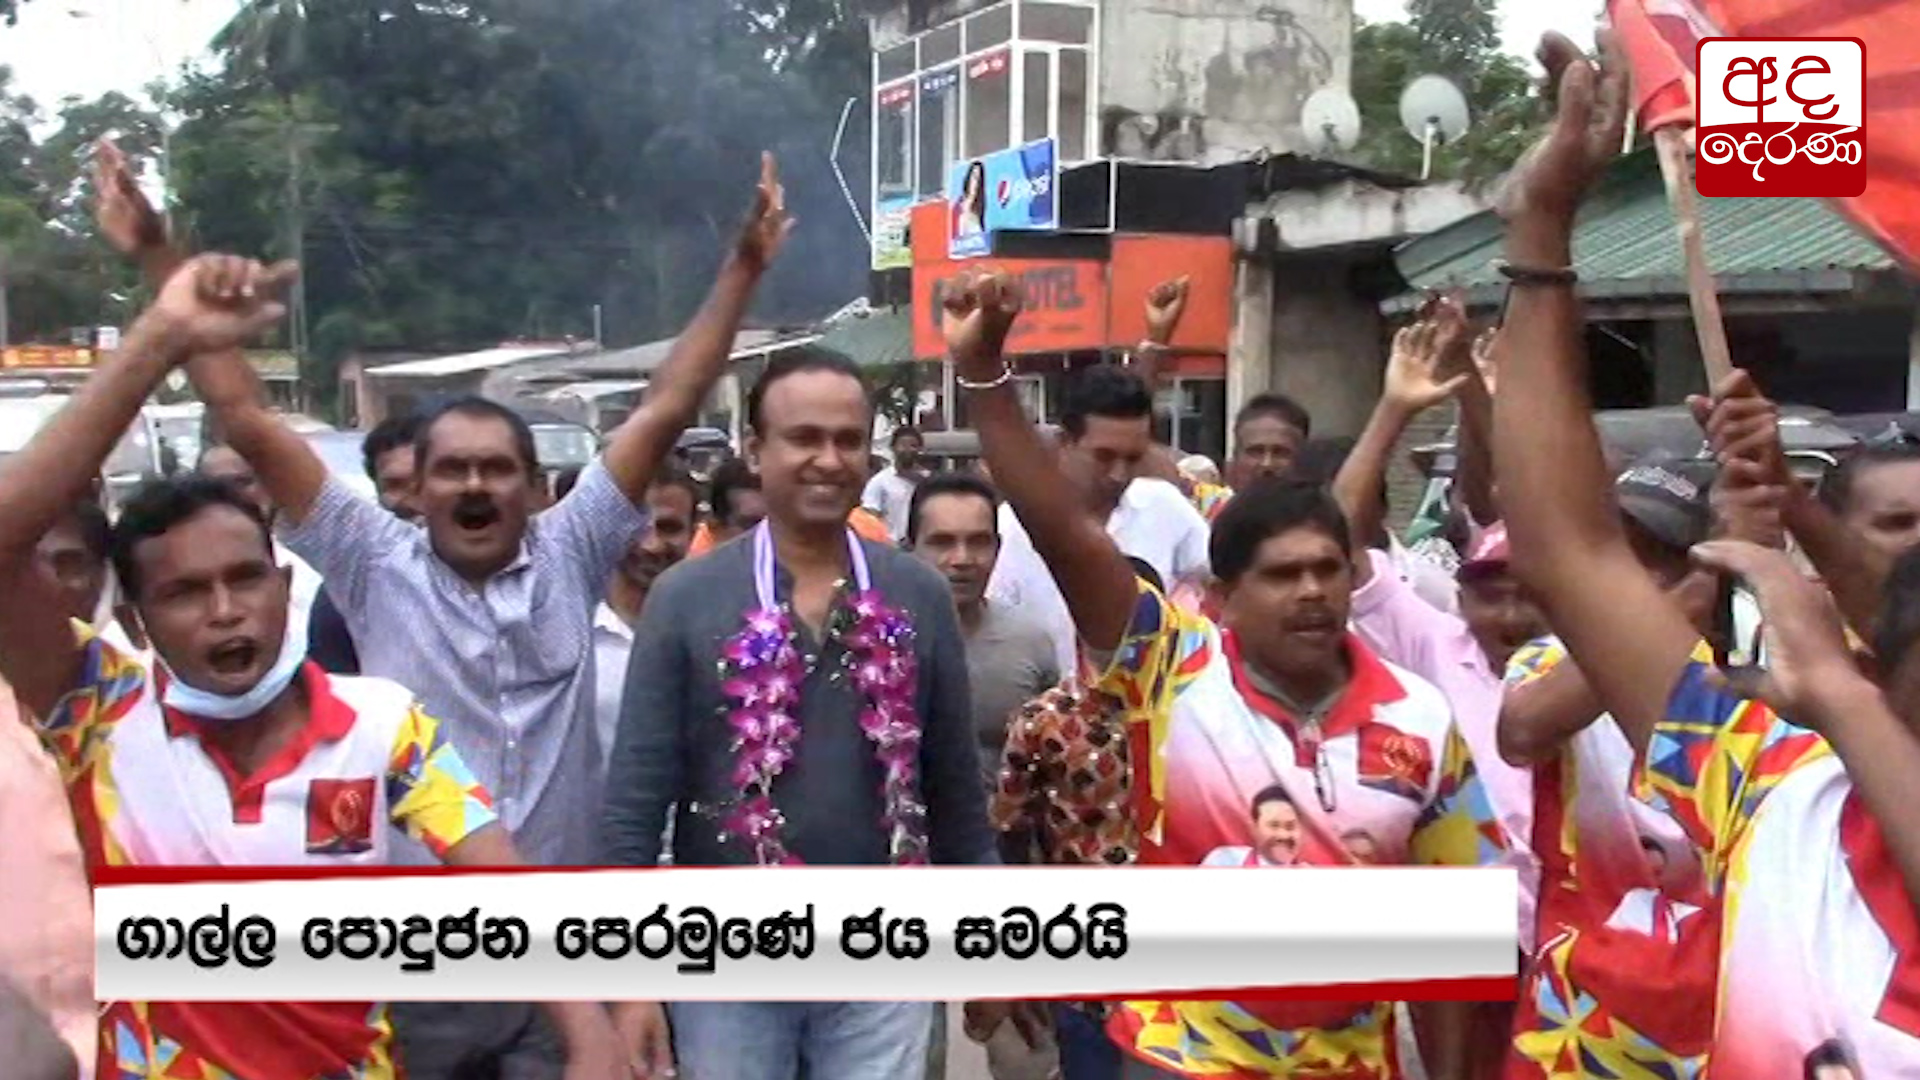 Winning candidates and supporters celebrate election results